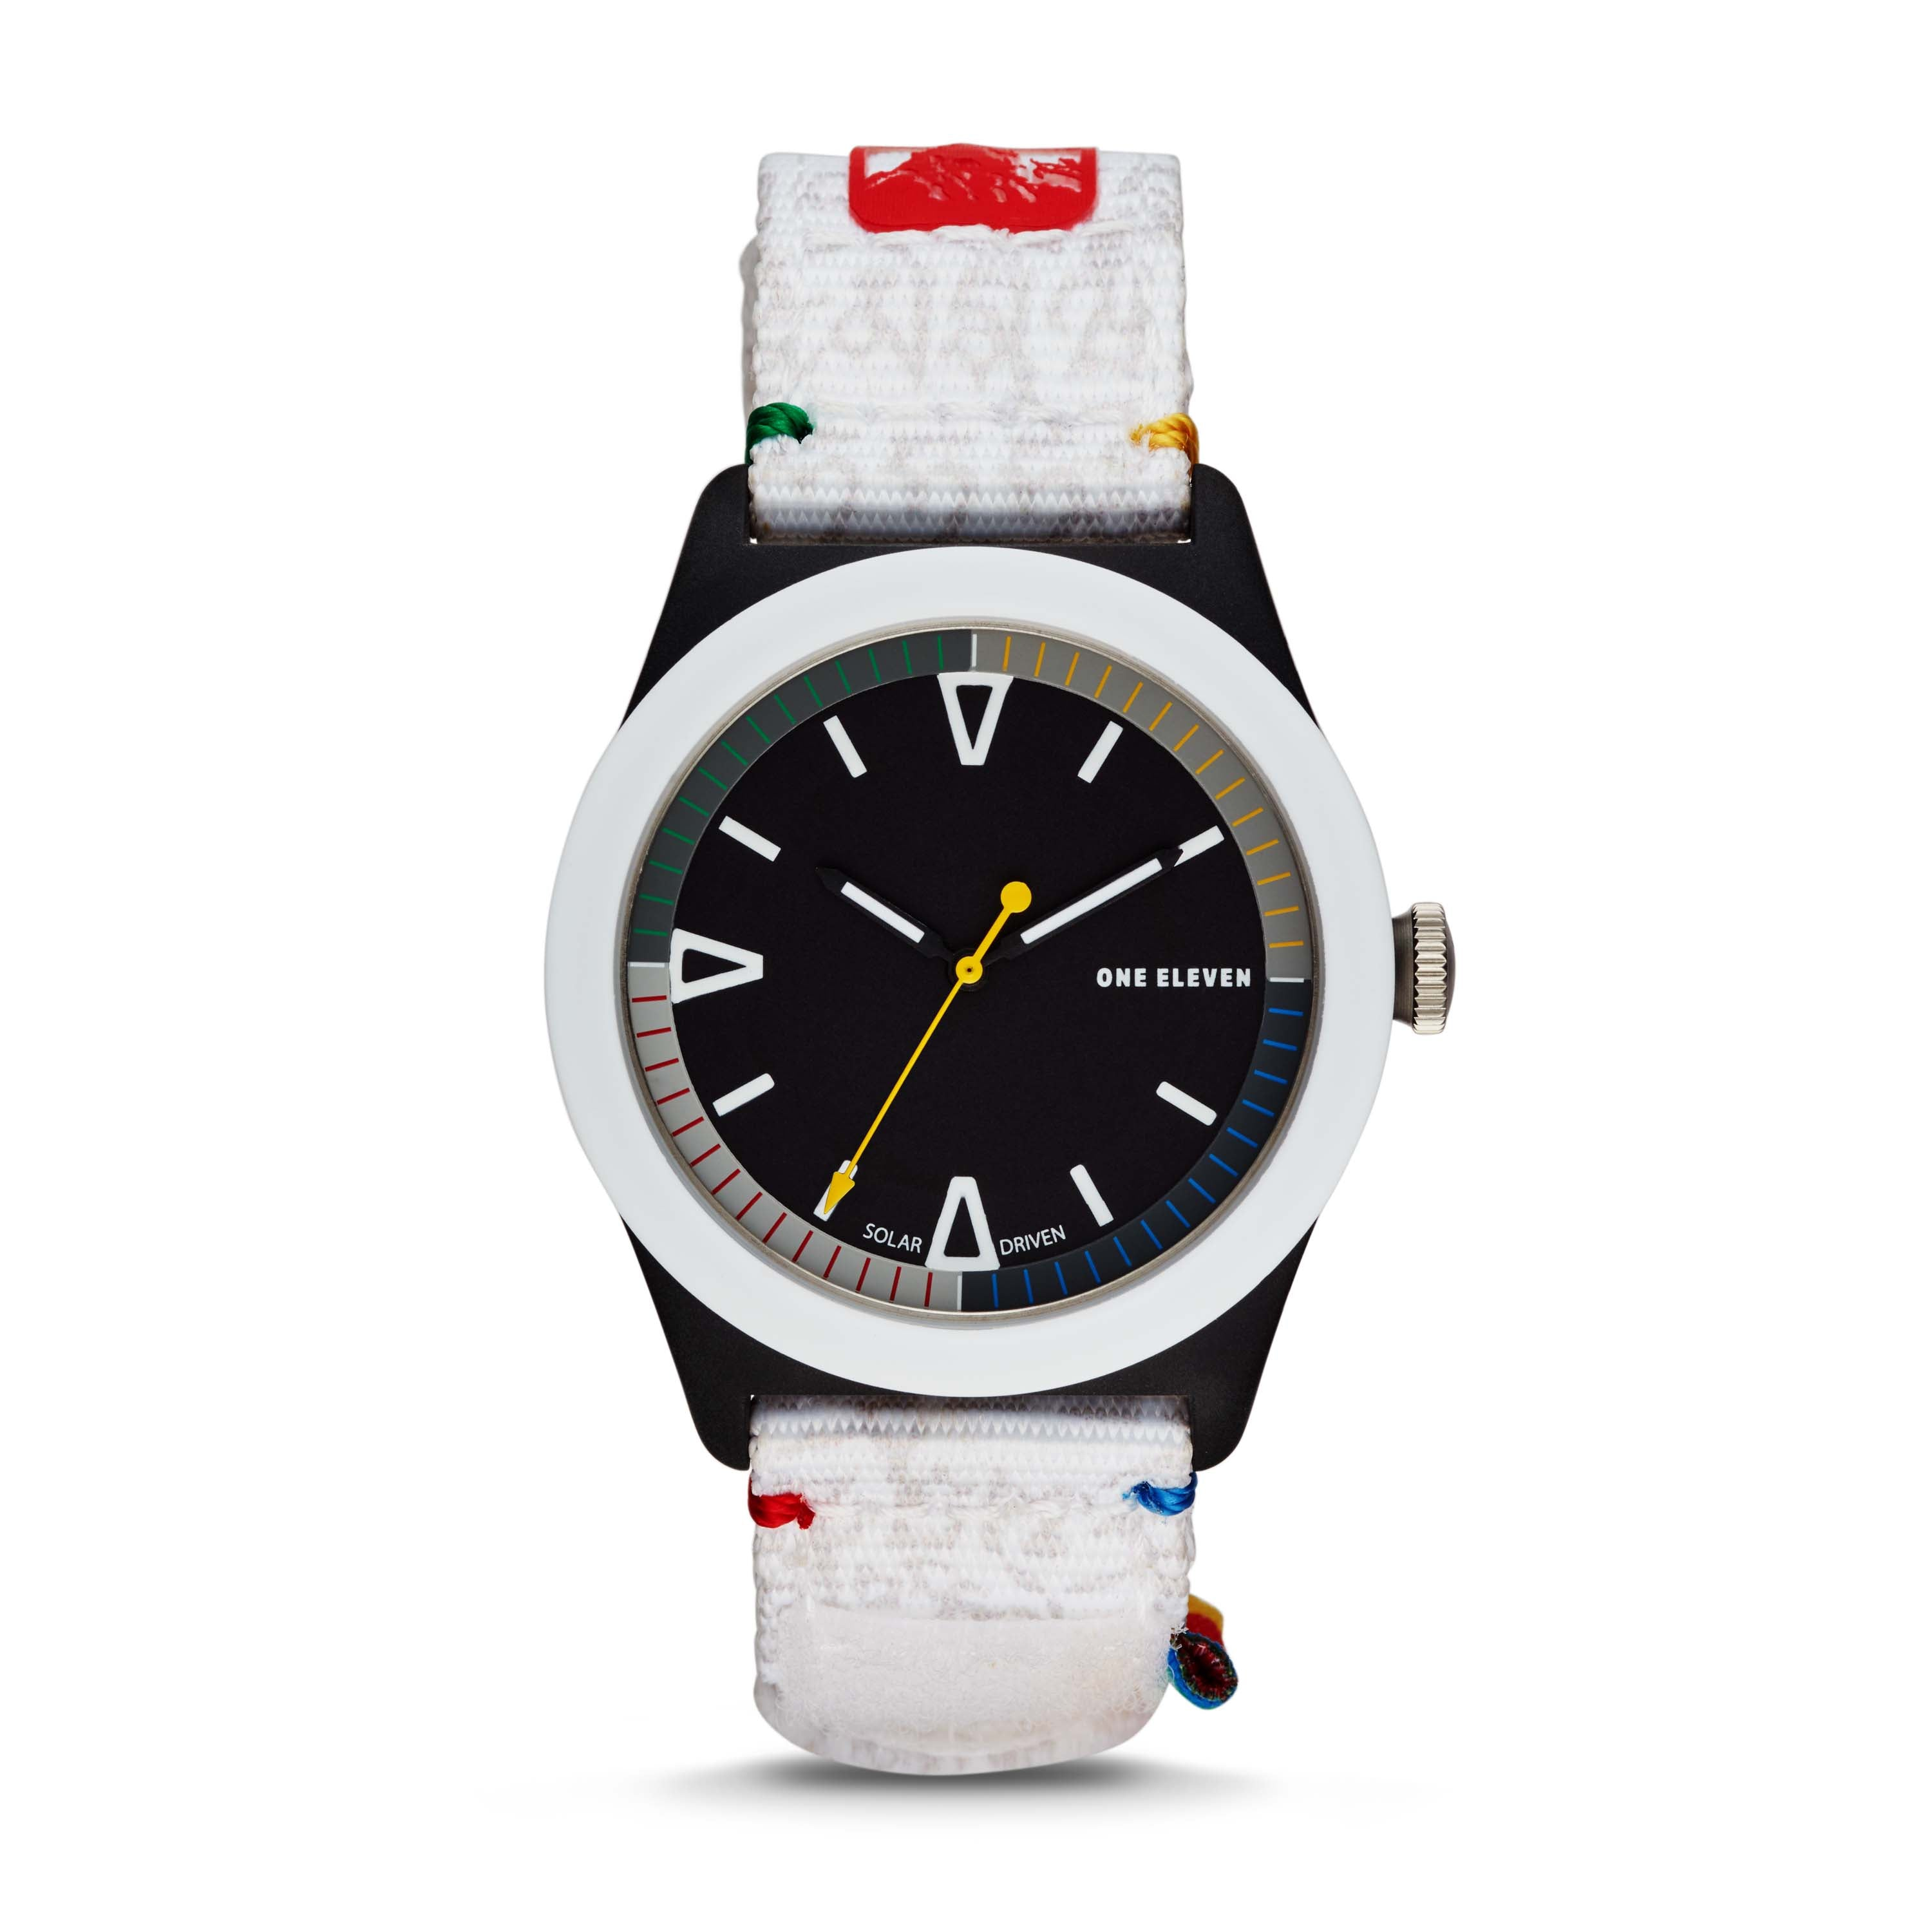 SWII Solar White Everest Special Edition Watch